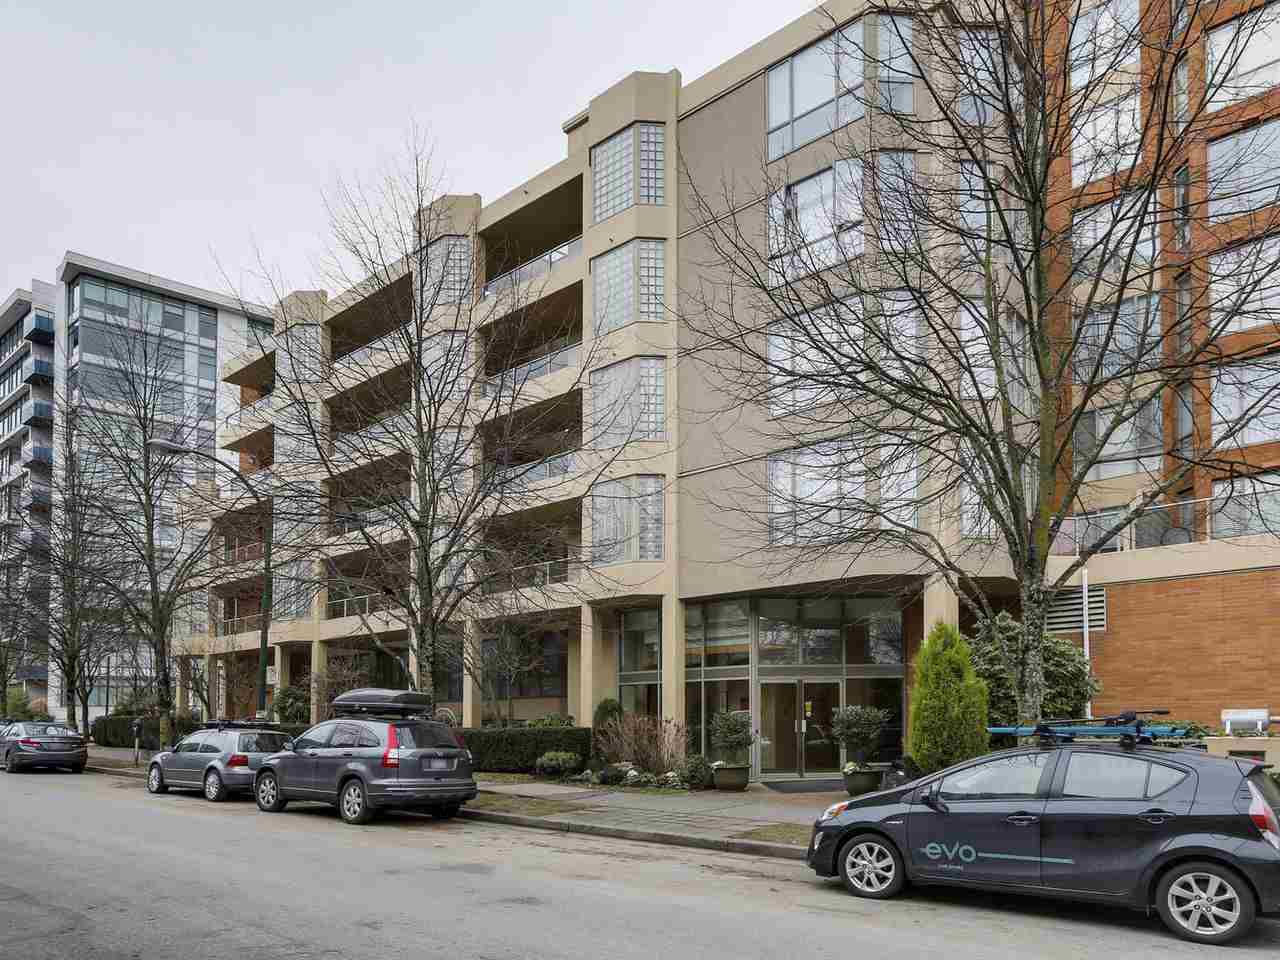 """Main Photo: 415 1707 W 7TH Avenue in Vancouver: Fairview VW Condo for sale in """"Santa Fe - Meridian Cove"""" (Vancouver West)  : MLS®# R2131301"""